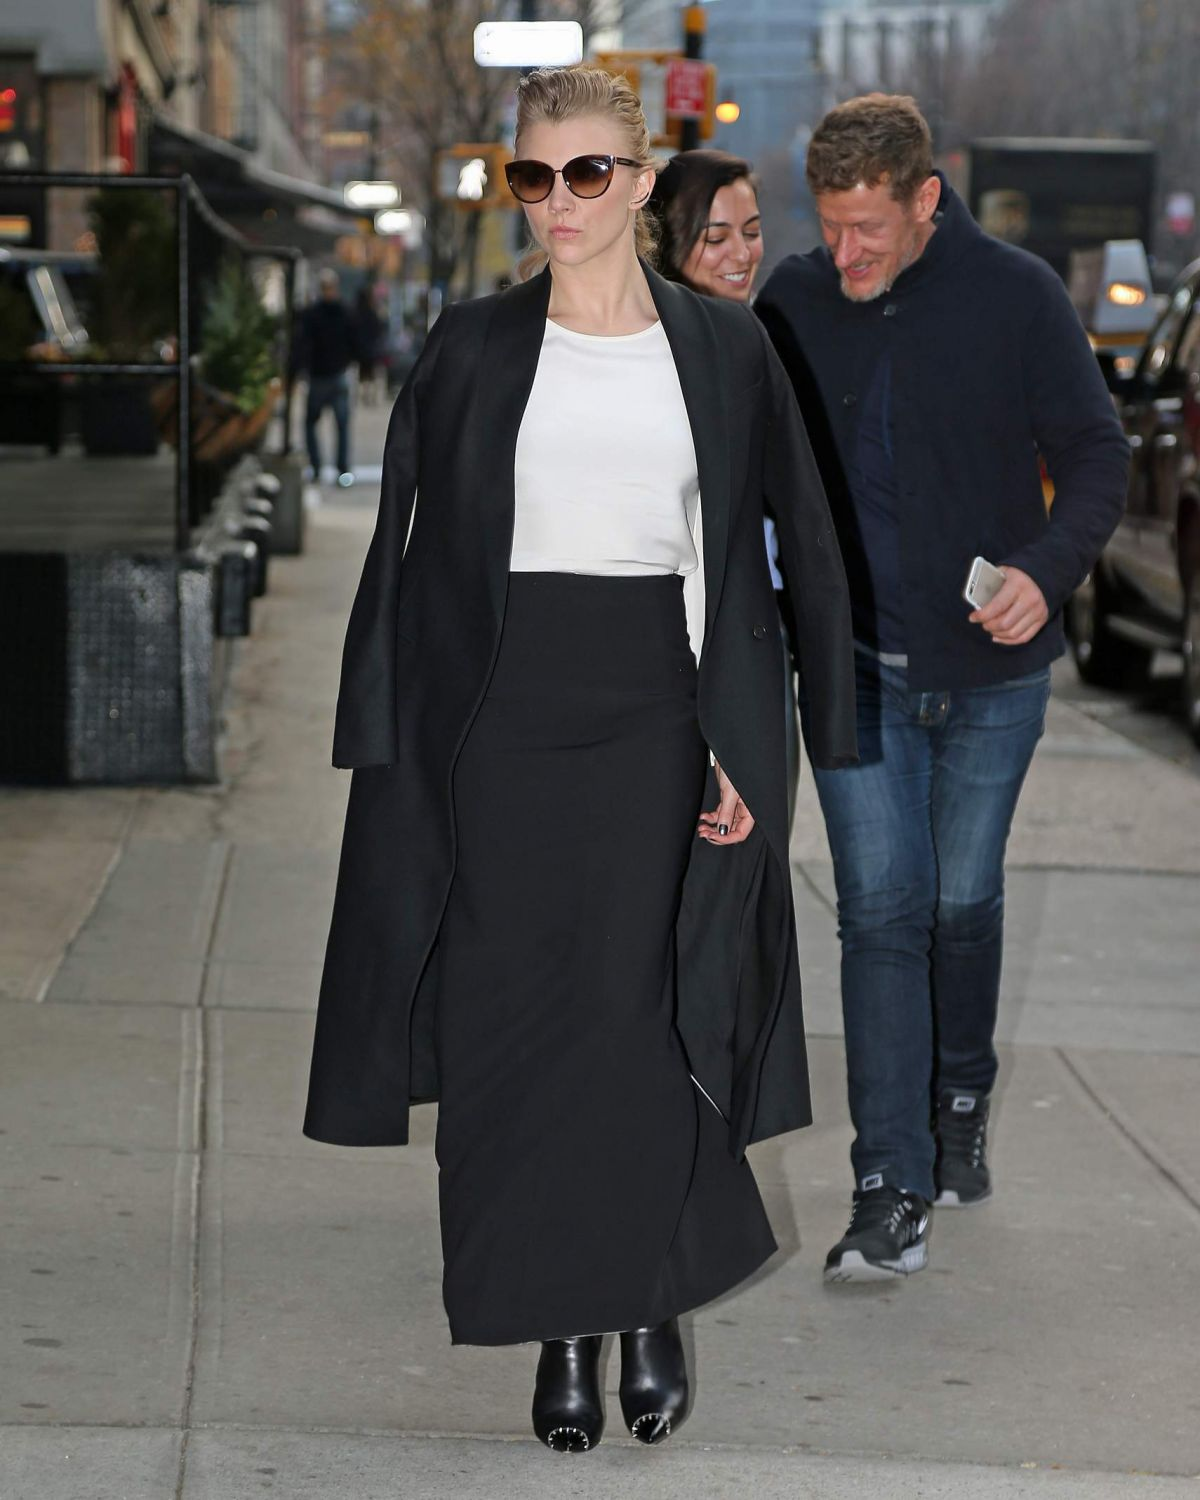 natalie-dormer-out-and-about-in-new-york-12-14-2015_5